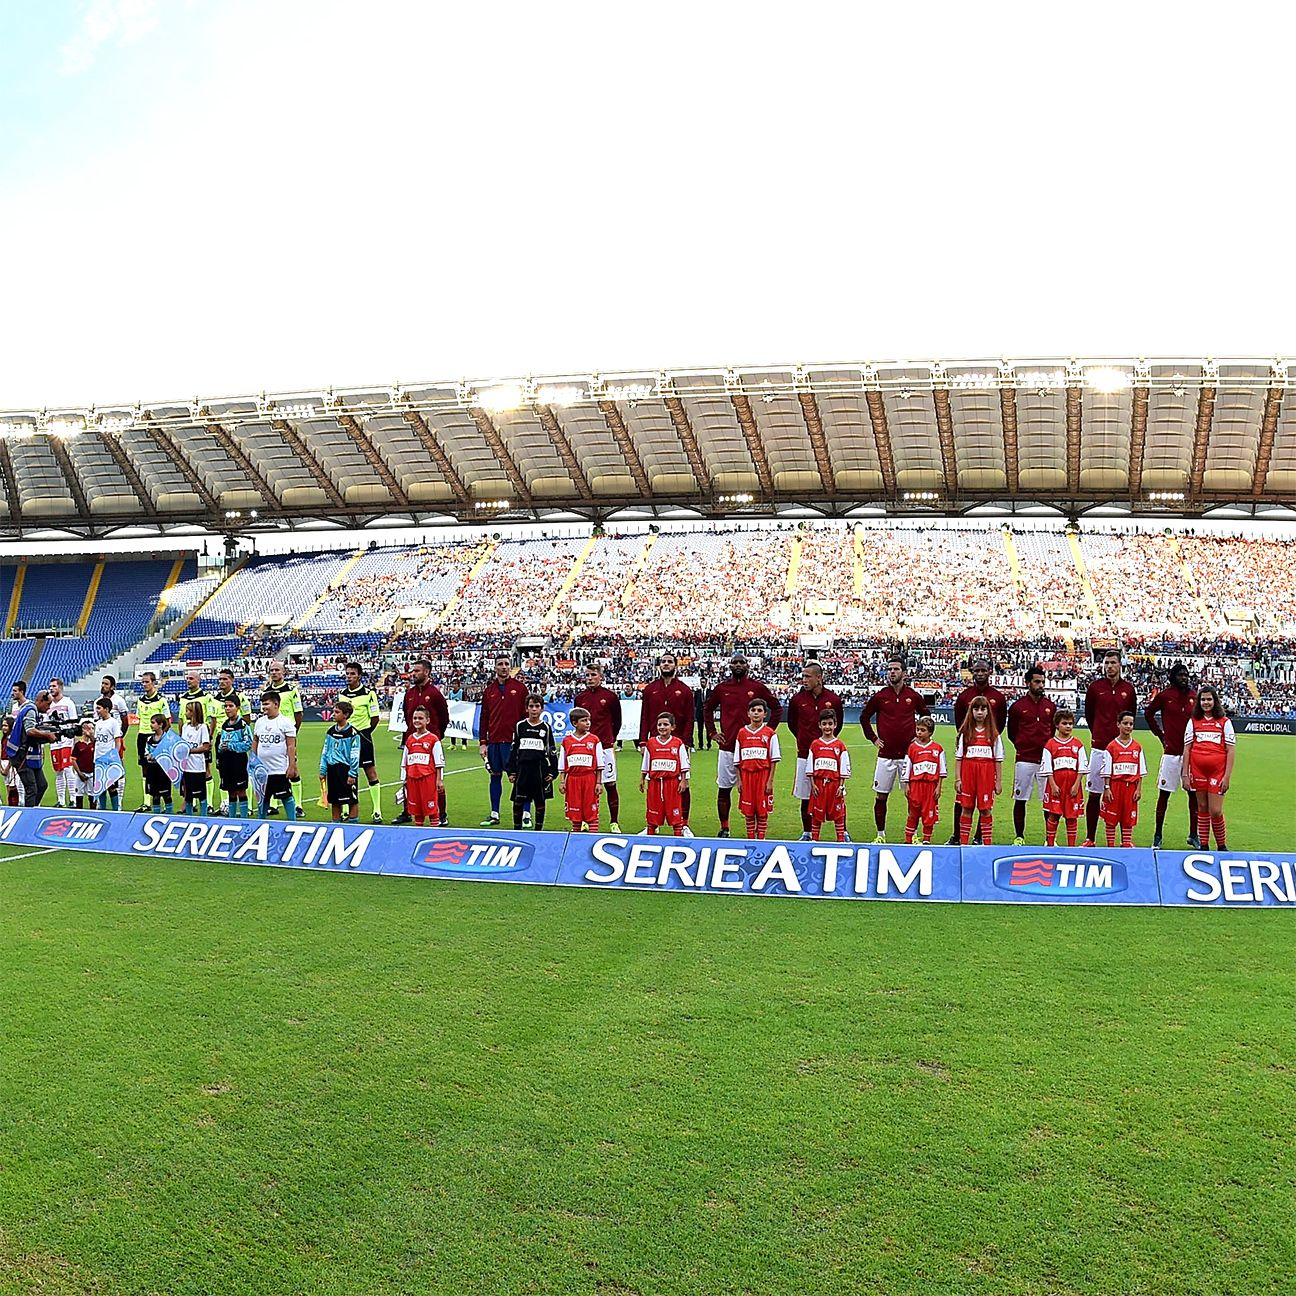 Roma's opponents currently have the luxury of not dealing with large crowds at the Stadio Olimpico.